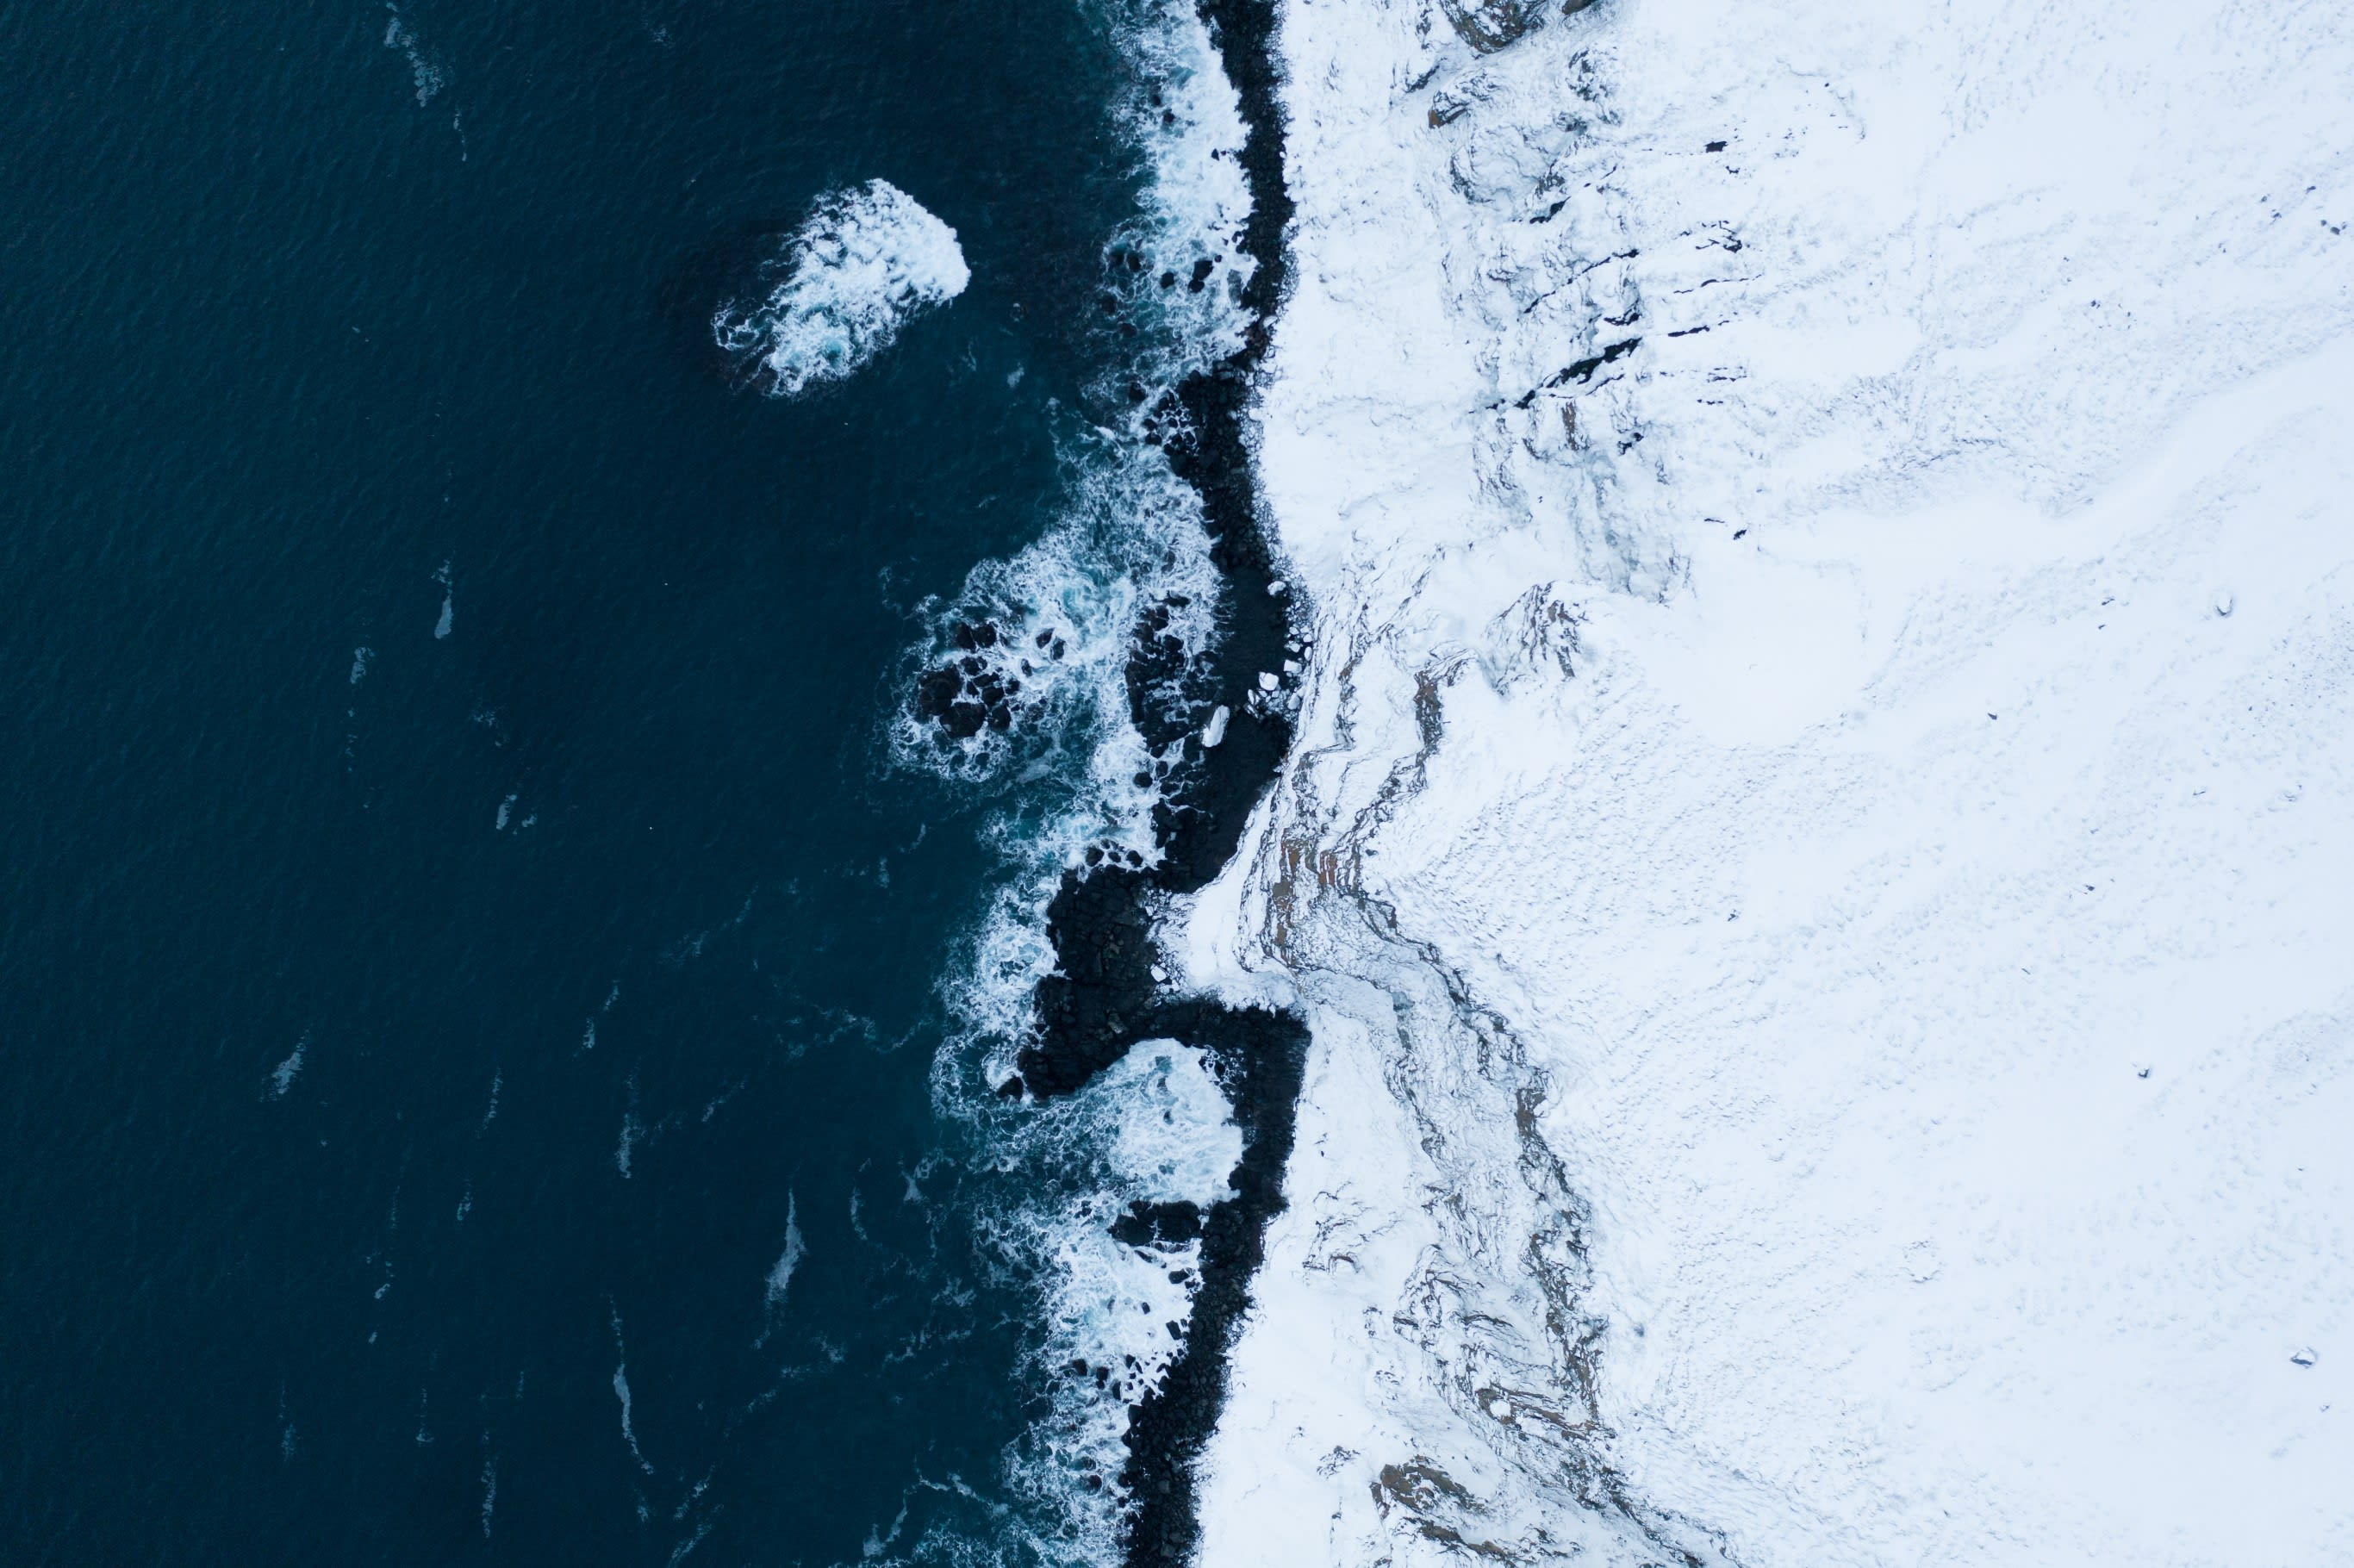 a birds eye view of the spot where a rugged mountain in Iceland meets the shore